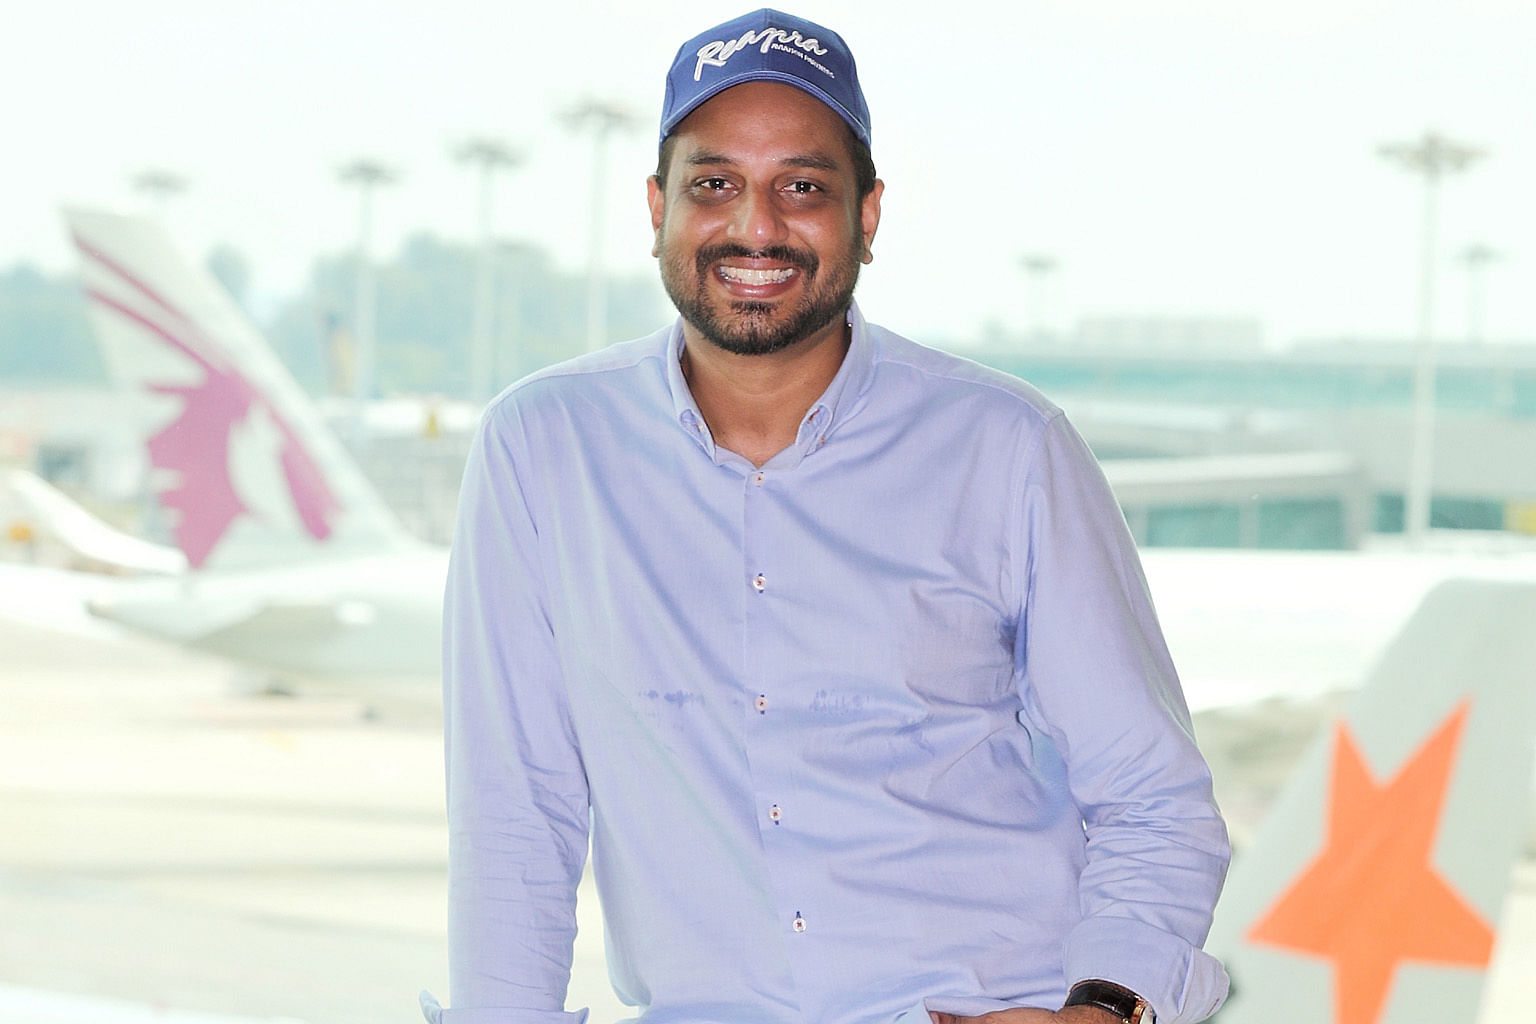 Mr Priveen Naidu Raj had helped start AirAsia in Singapore. He later left the airline to become a polytechnic lecturer. He subsequently founded a branding outfit for the aviation industry, which he sold to a corporation for a handsome profit.